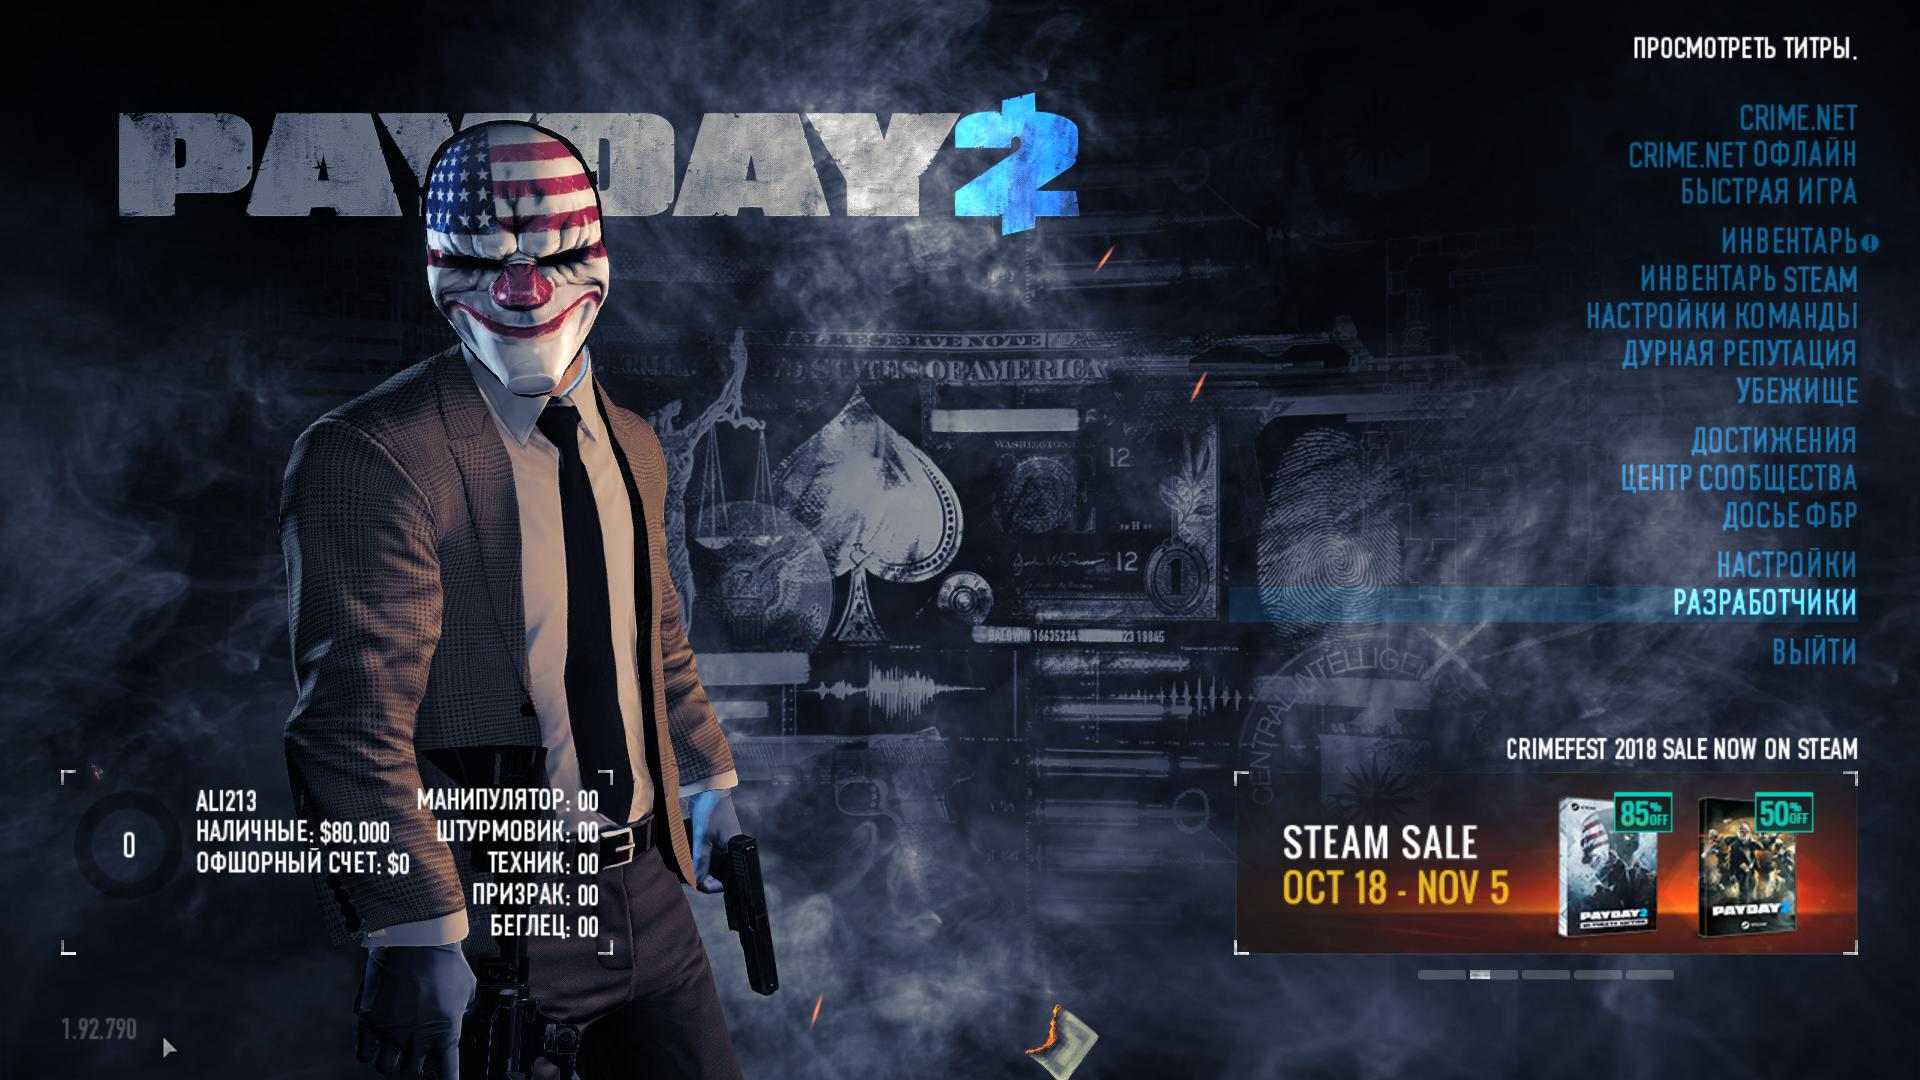 Payday 2 - Ultimate Edition [v 1.92.790 + DLCs] (2013/PC/Русский), RePack от xatab